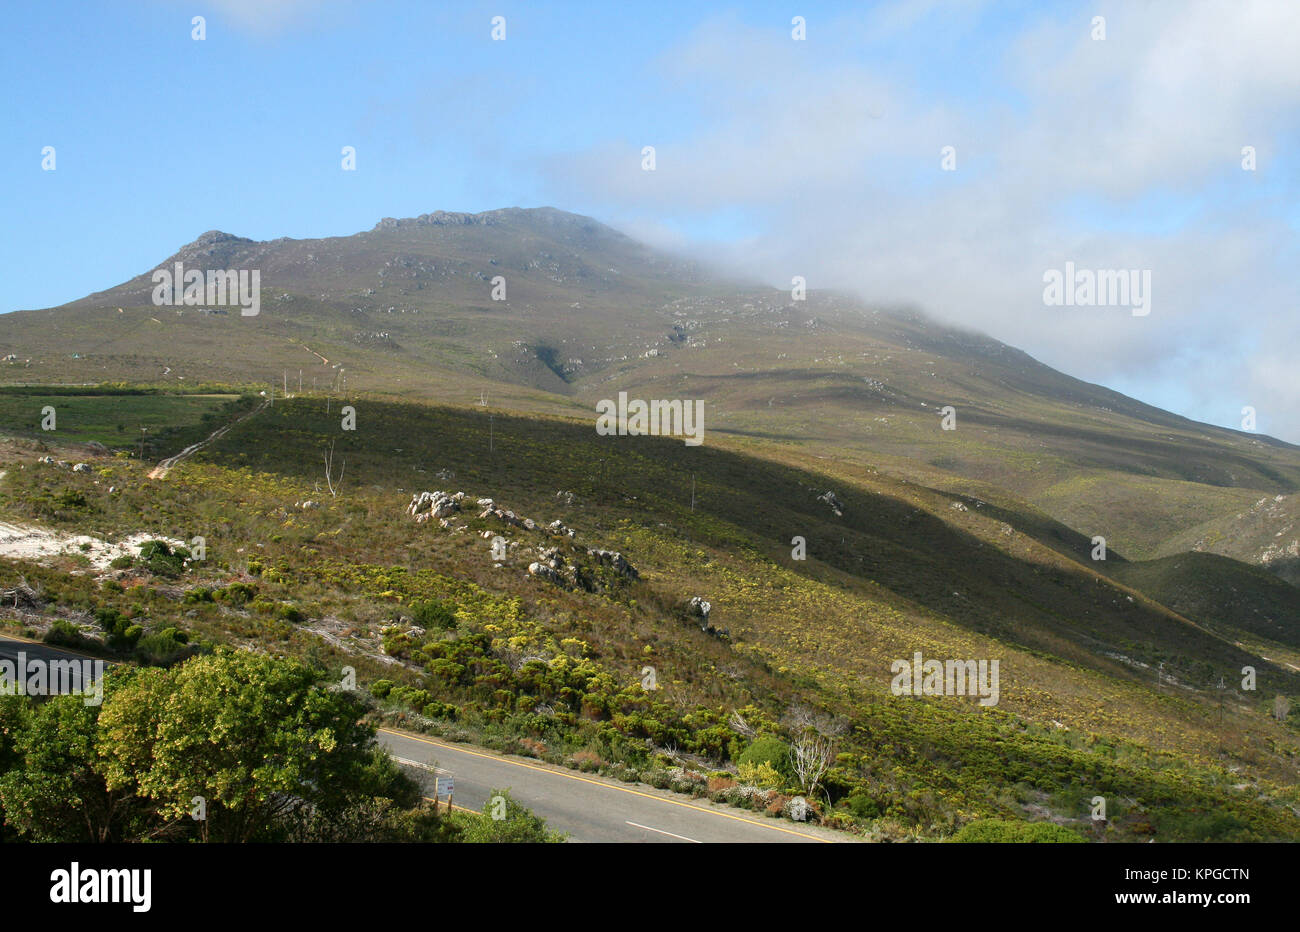 Scenic view of the countryside, Hermanus, South Africa - Stock Image